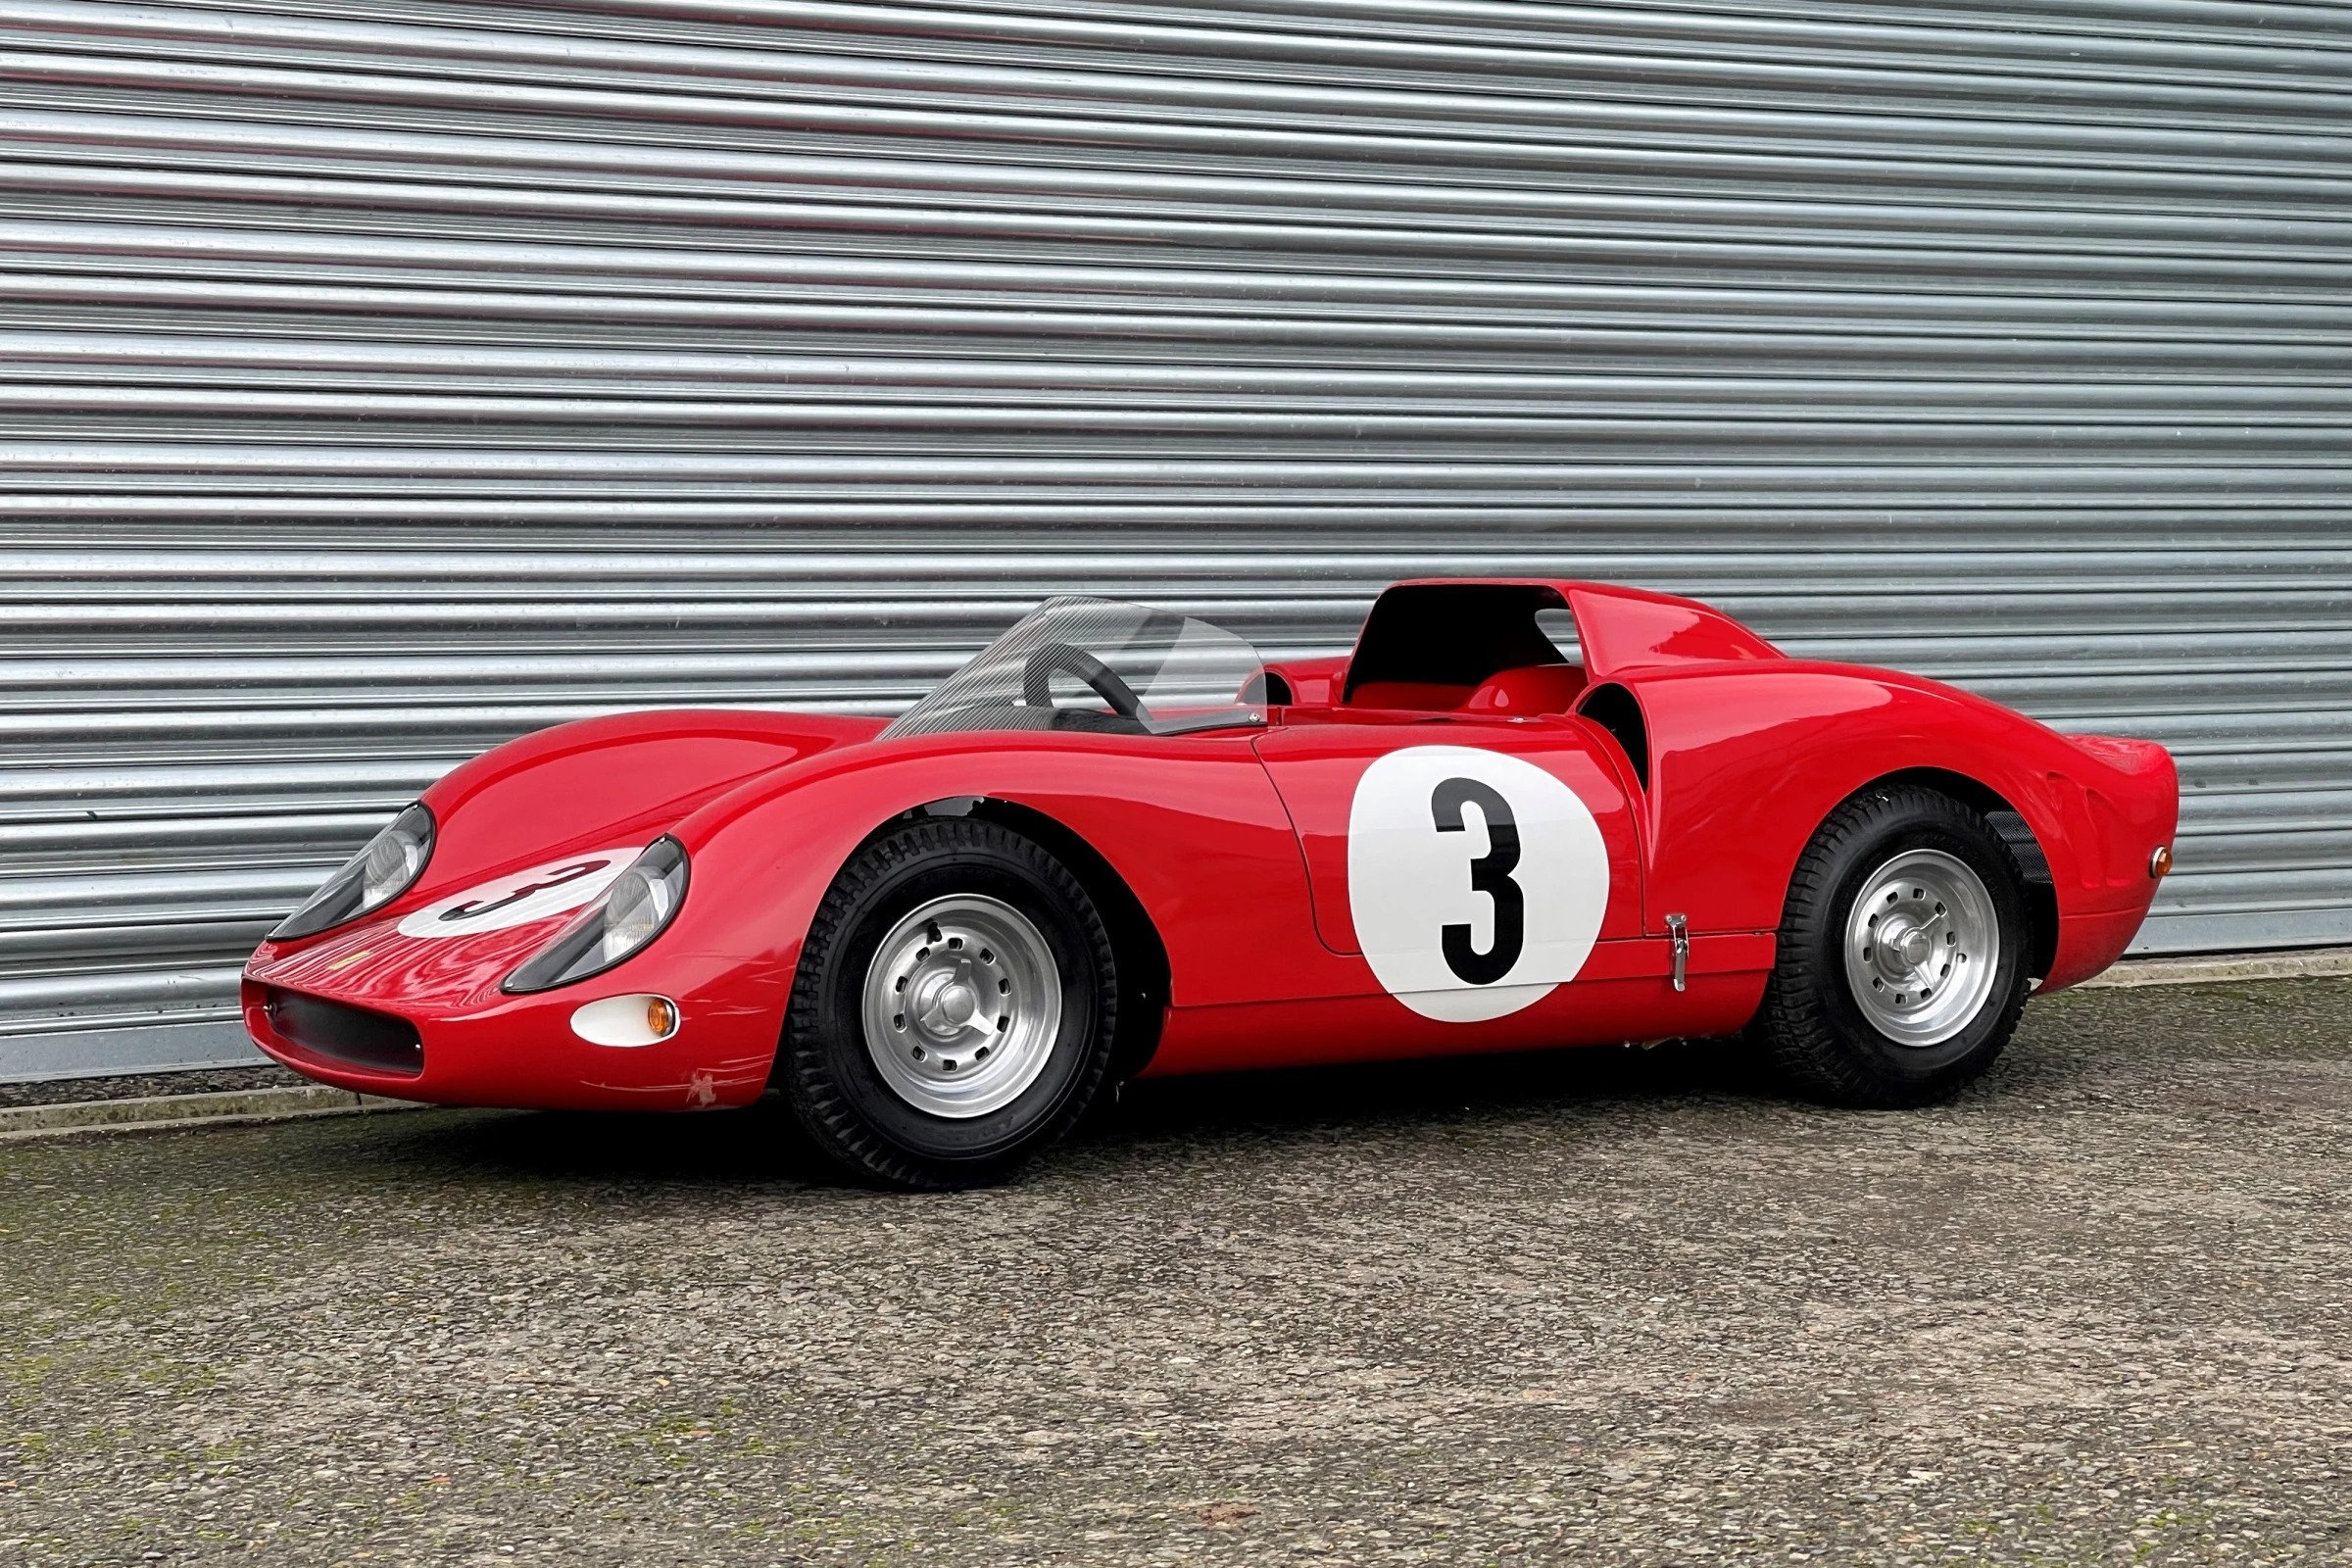 Children's Ferrari Replica Sets A New Price Record At Paris Auction